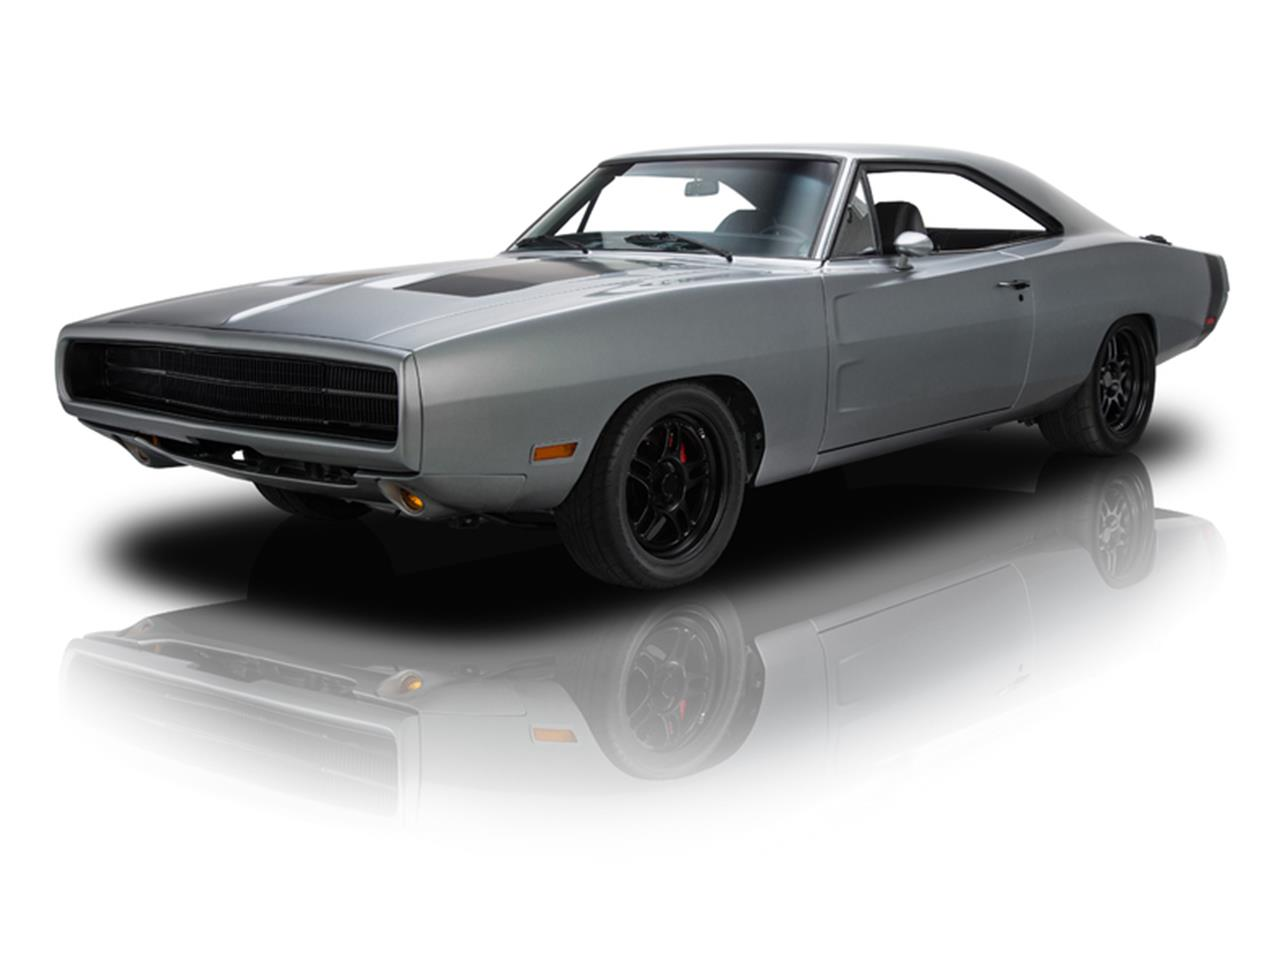 1970 dodge charger r t for sale cc 695208 for Old black and white photos for sale